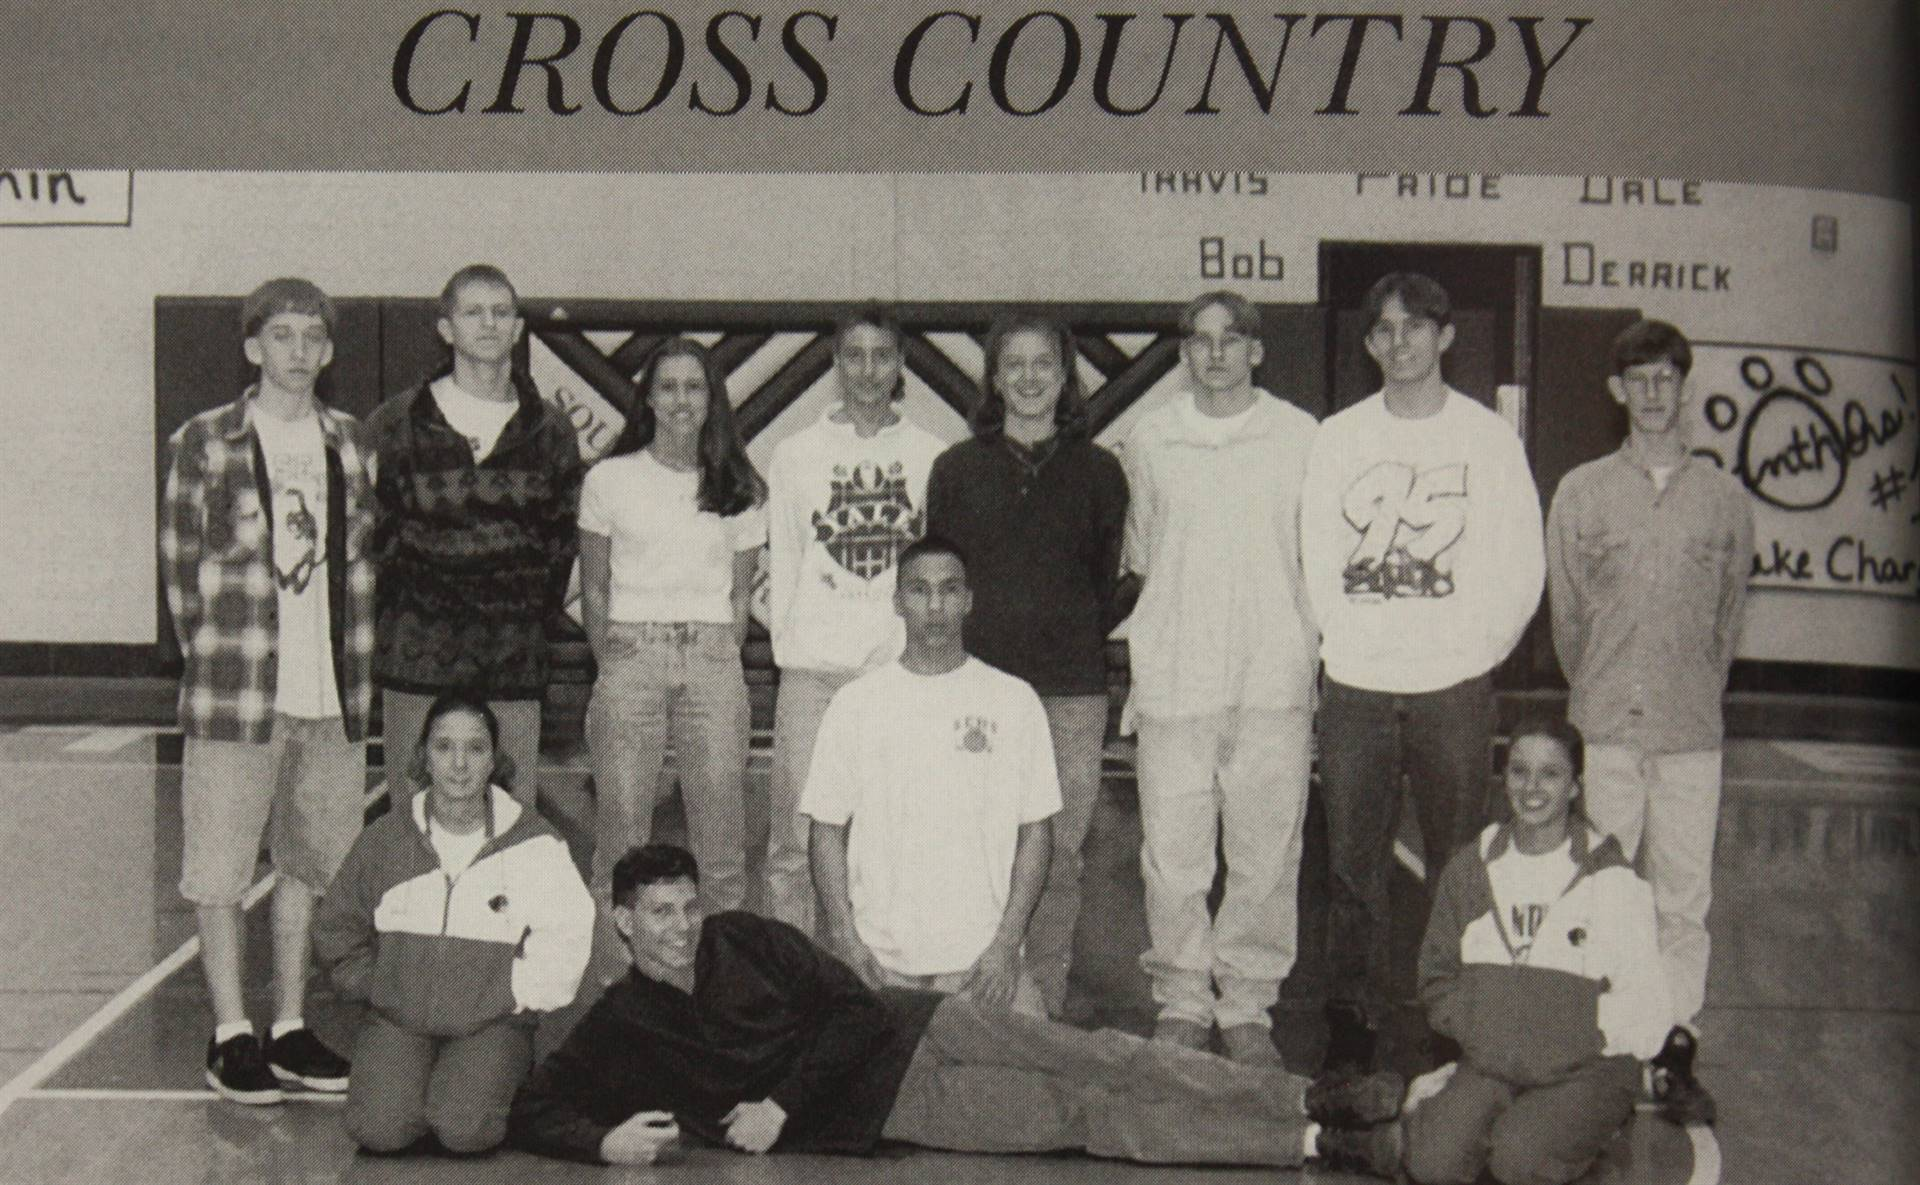 1995 Cross Country